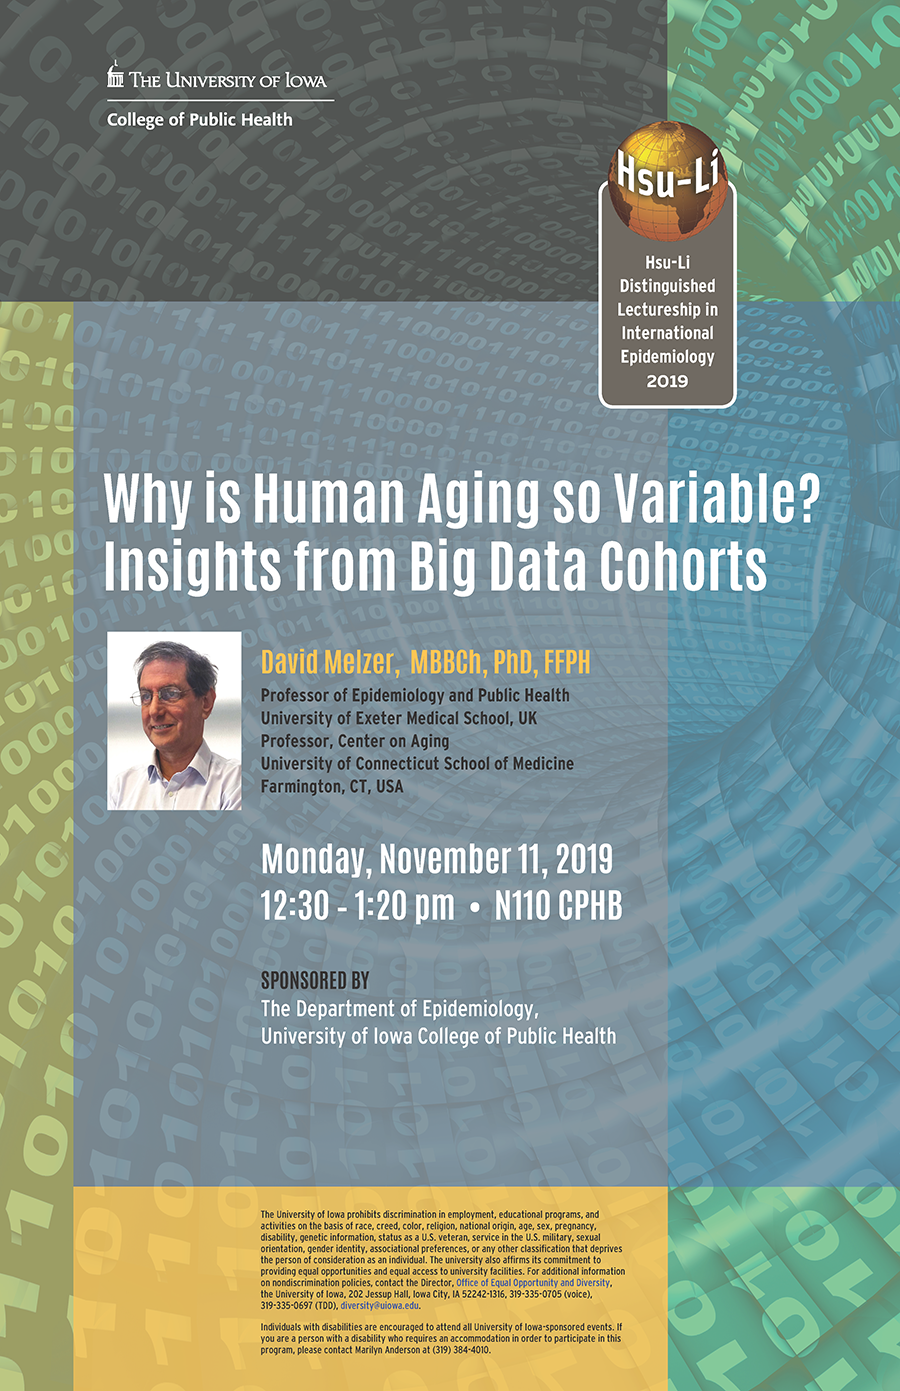 poster for the 2019 Hsu-Li lecture by David Melzer